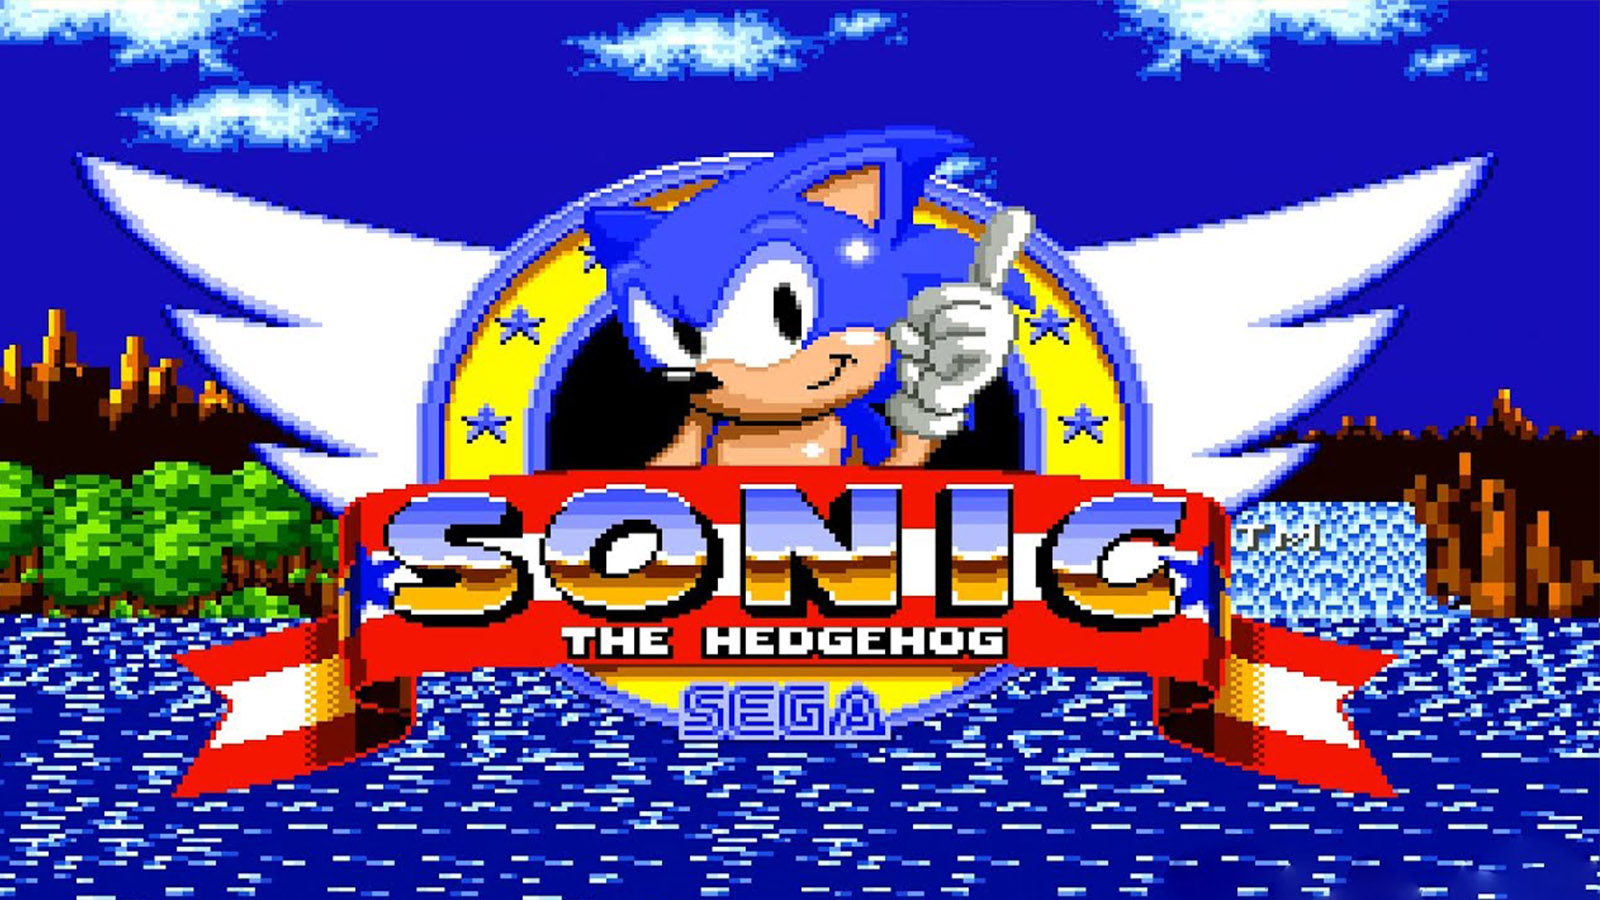 Sonic the Hedgehog first released in 1991 for the Sega Genesis.